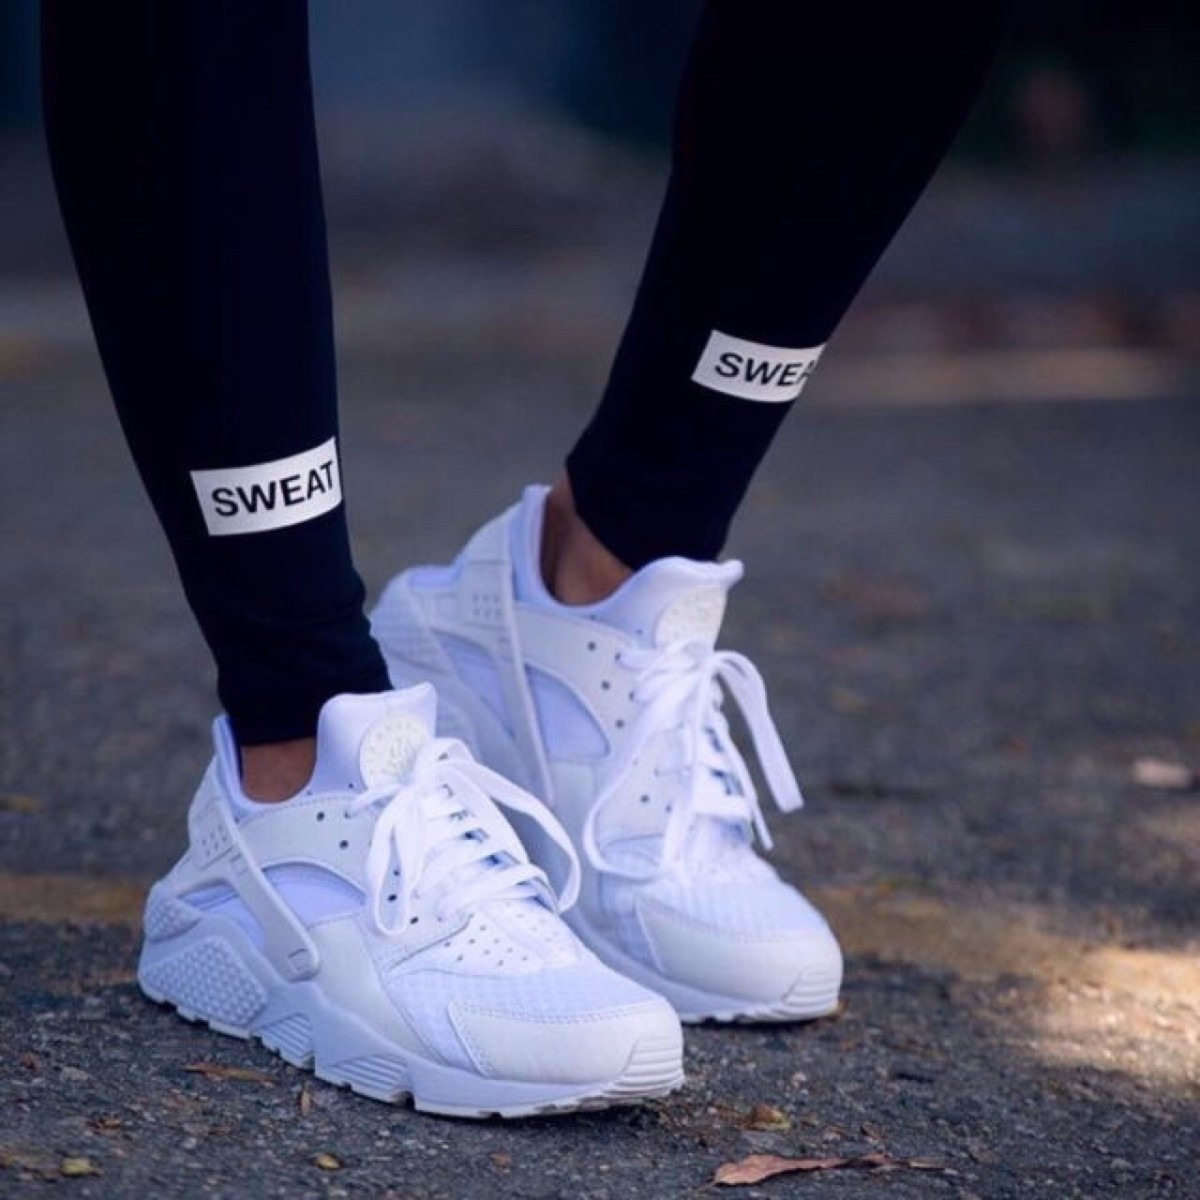 zapatillas nike huarache blancas